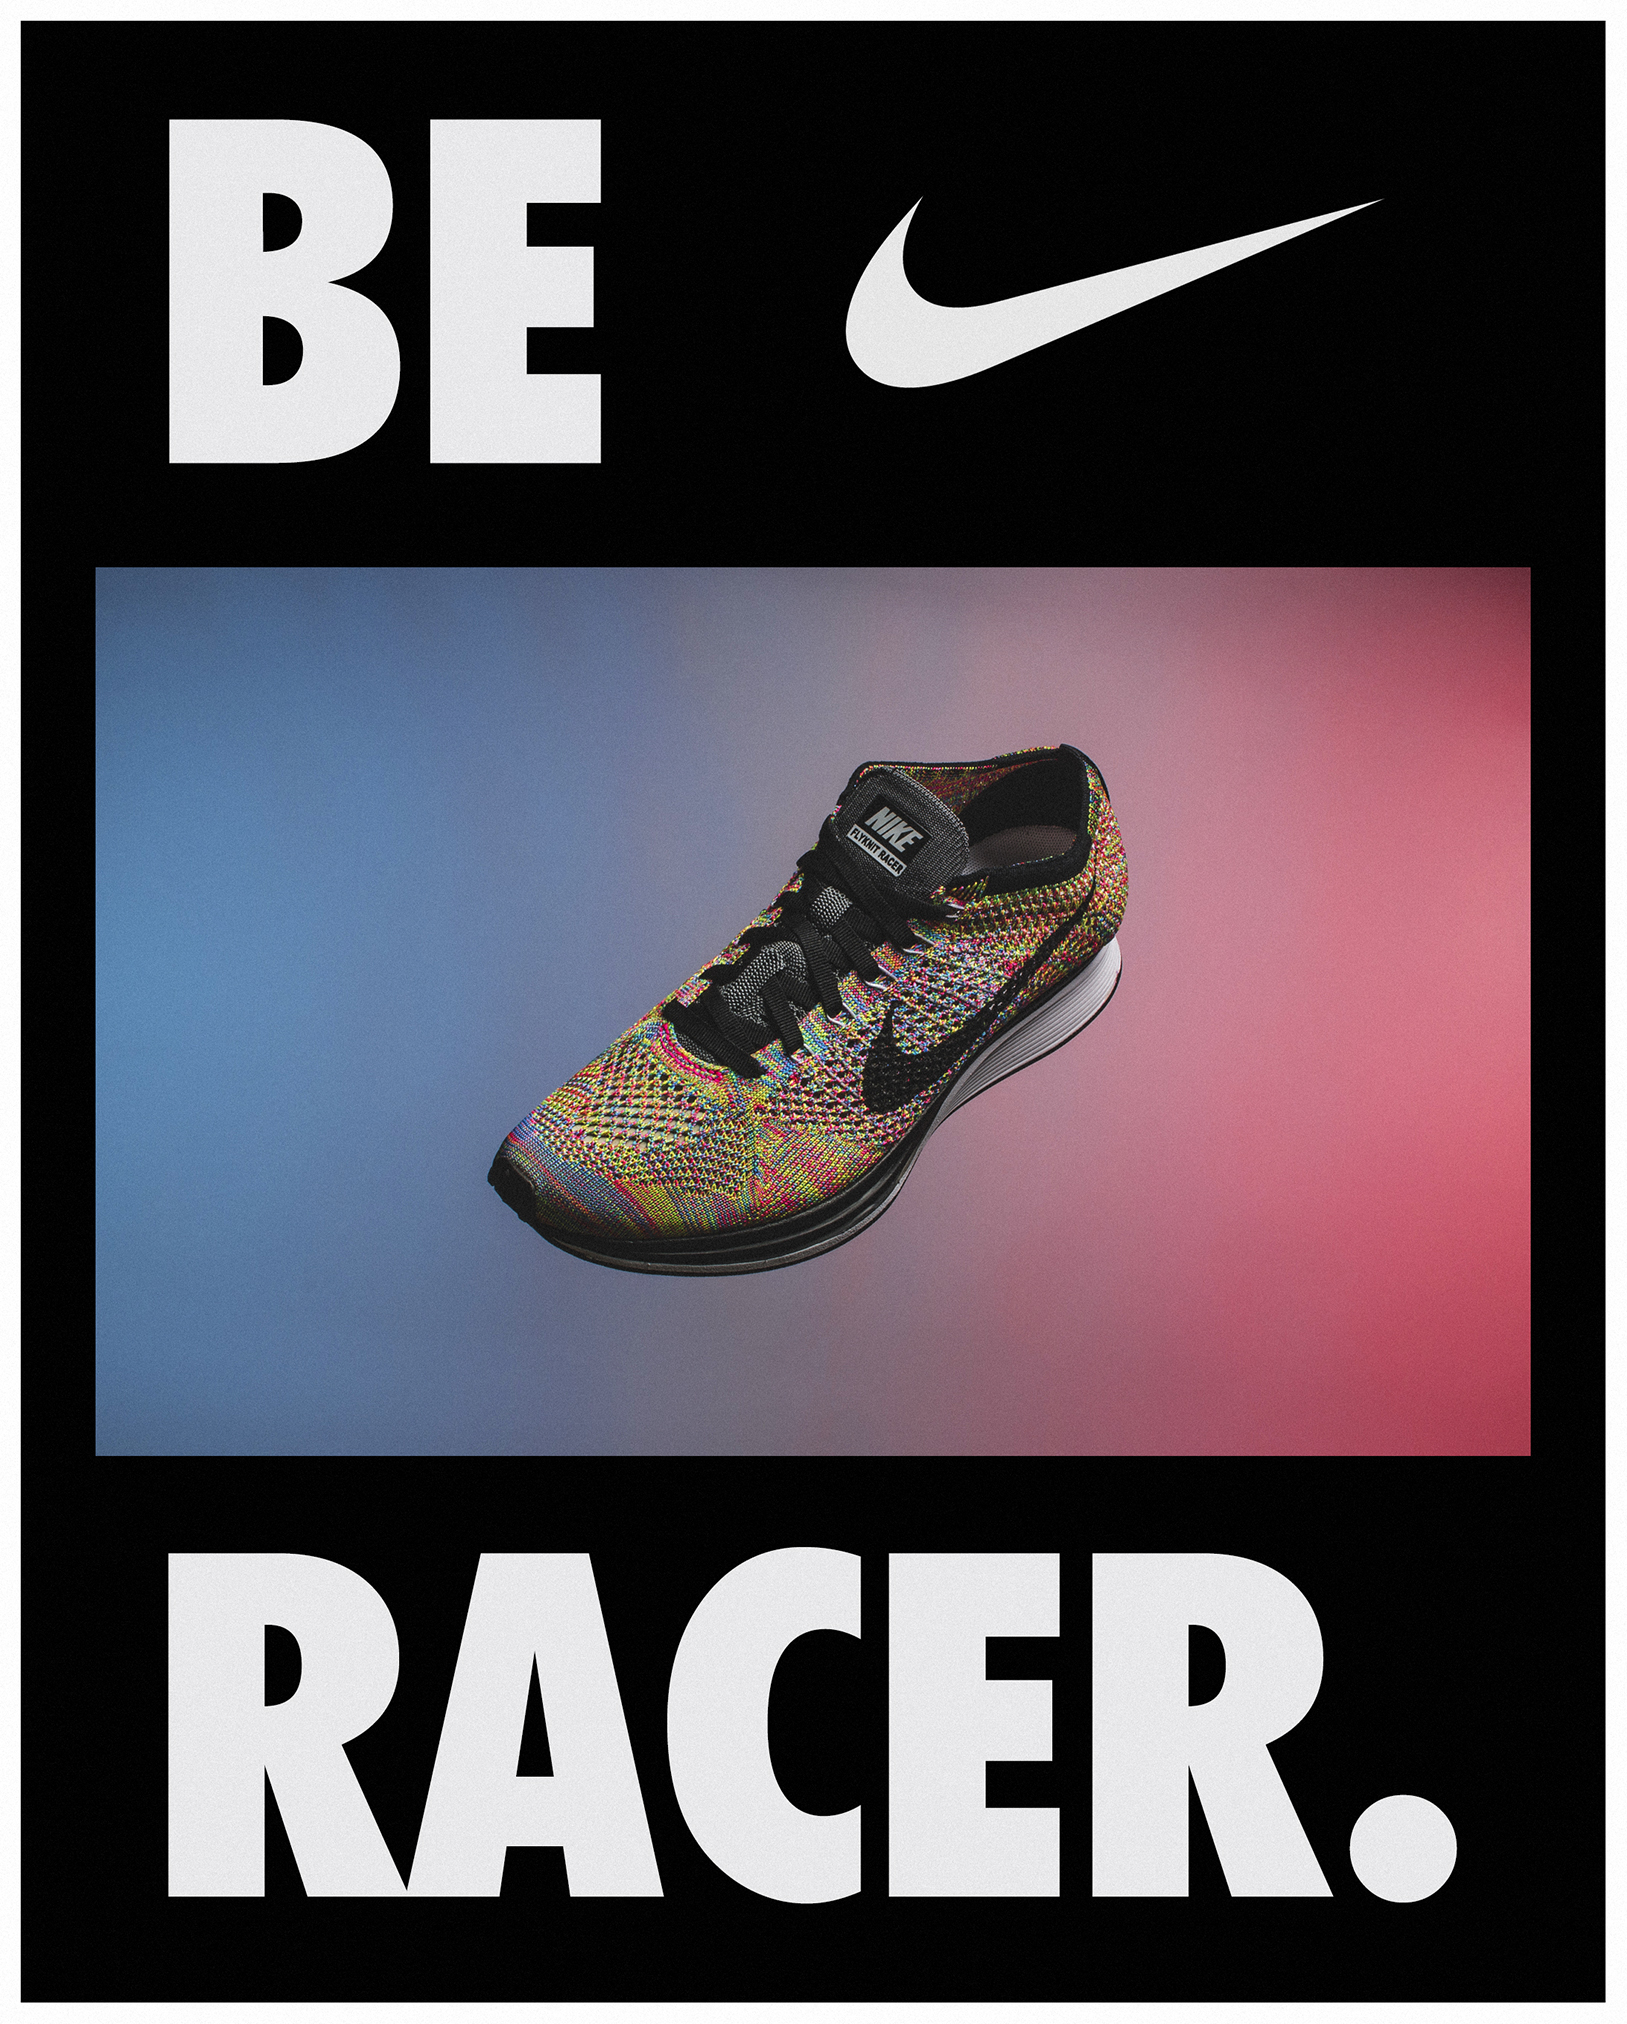 sergio-loes-producto-nike-racer-multicolor